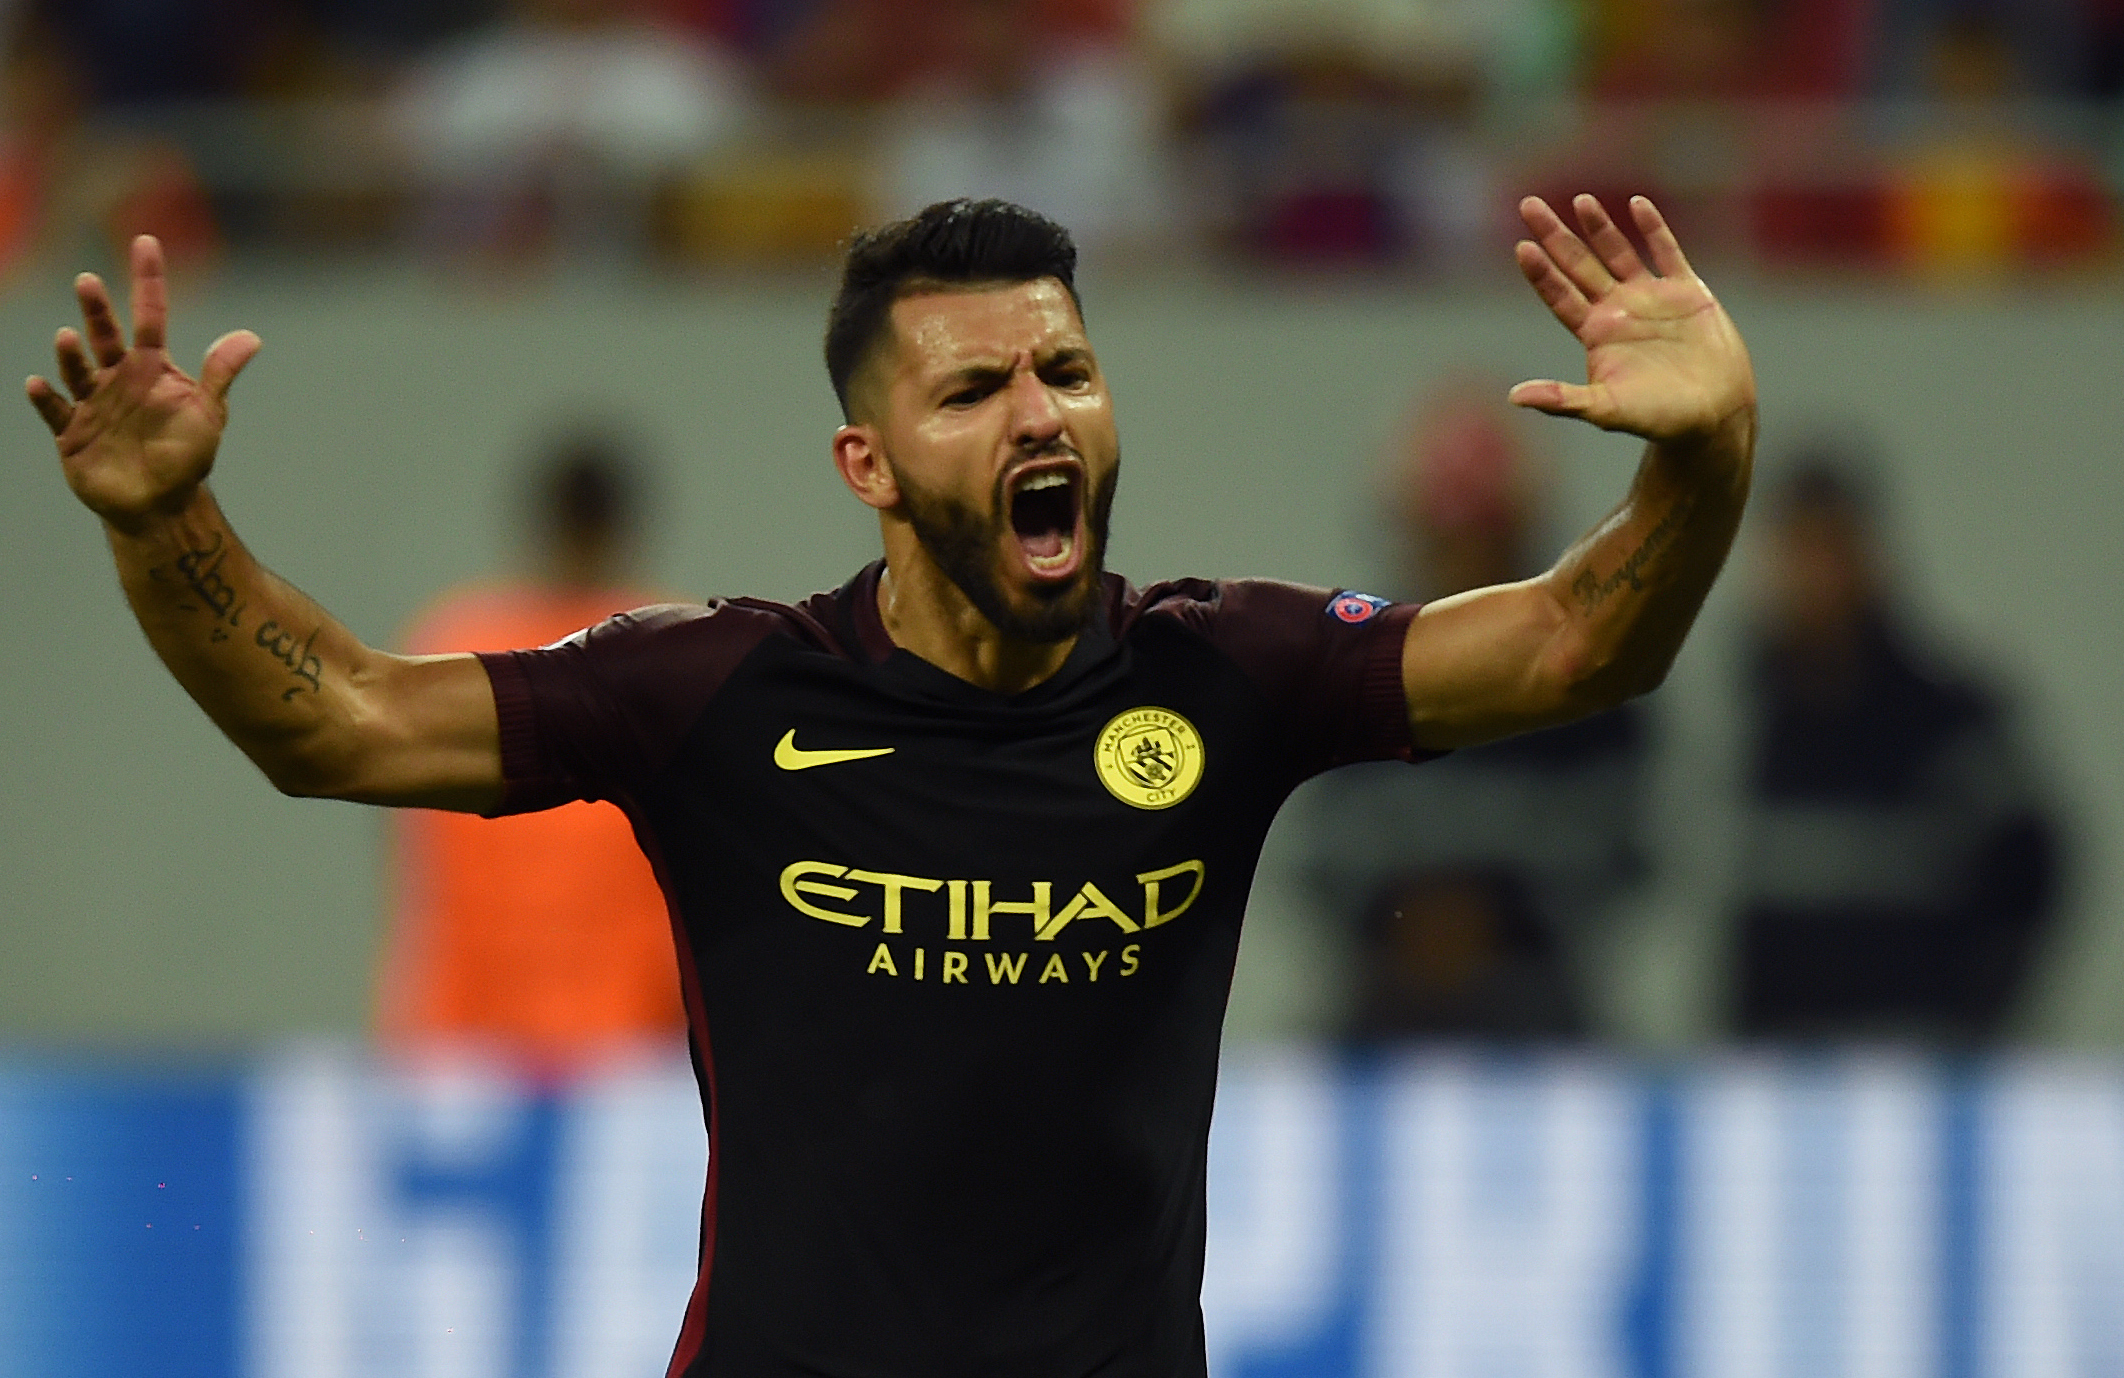 Manchester City's Argentinian striker Sergio Aguero celebrates scoring a goal during the UEFA Champions league first leg play-off football match between Steaua Bucharest and Manchester City at the National Arena stadium in Bucharest on August 16, 2016. / AFP / DANIEL MIHAILESCU (Photo credit should read DANIEL MIHAILESCU/AFP/Getty Images)